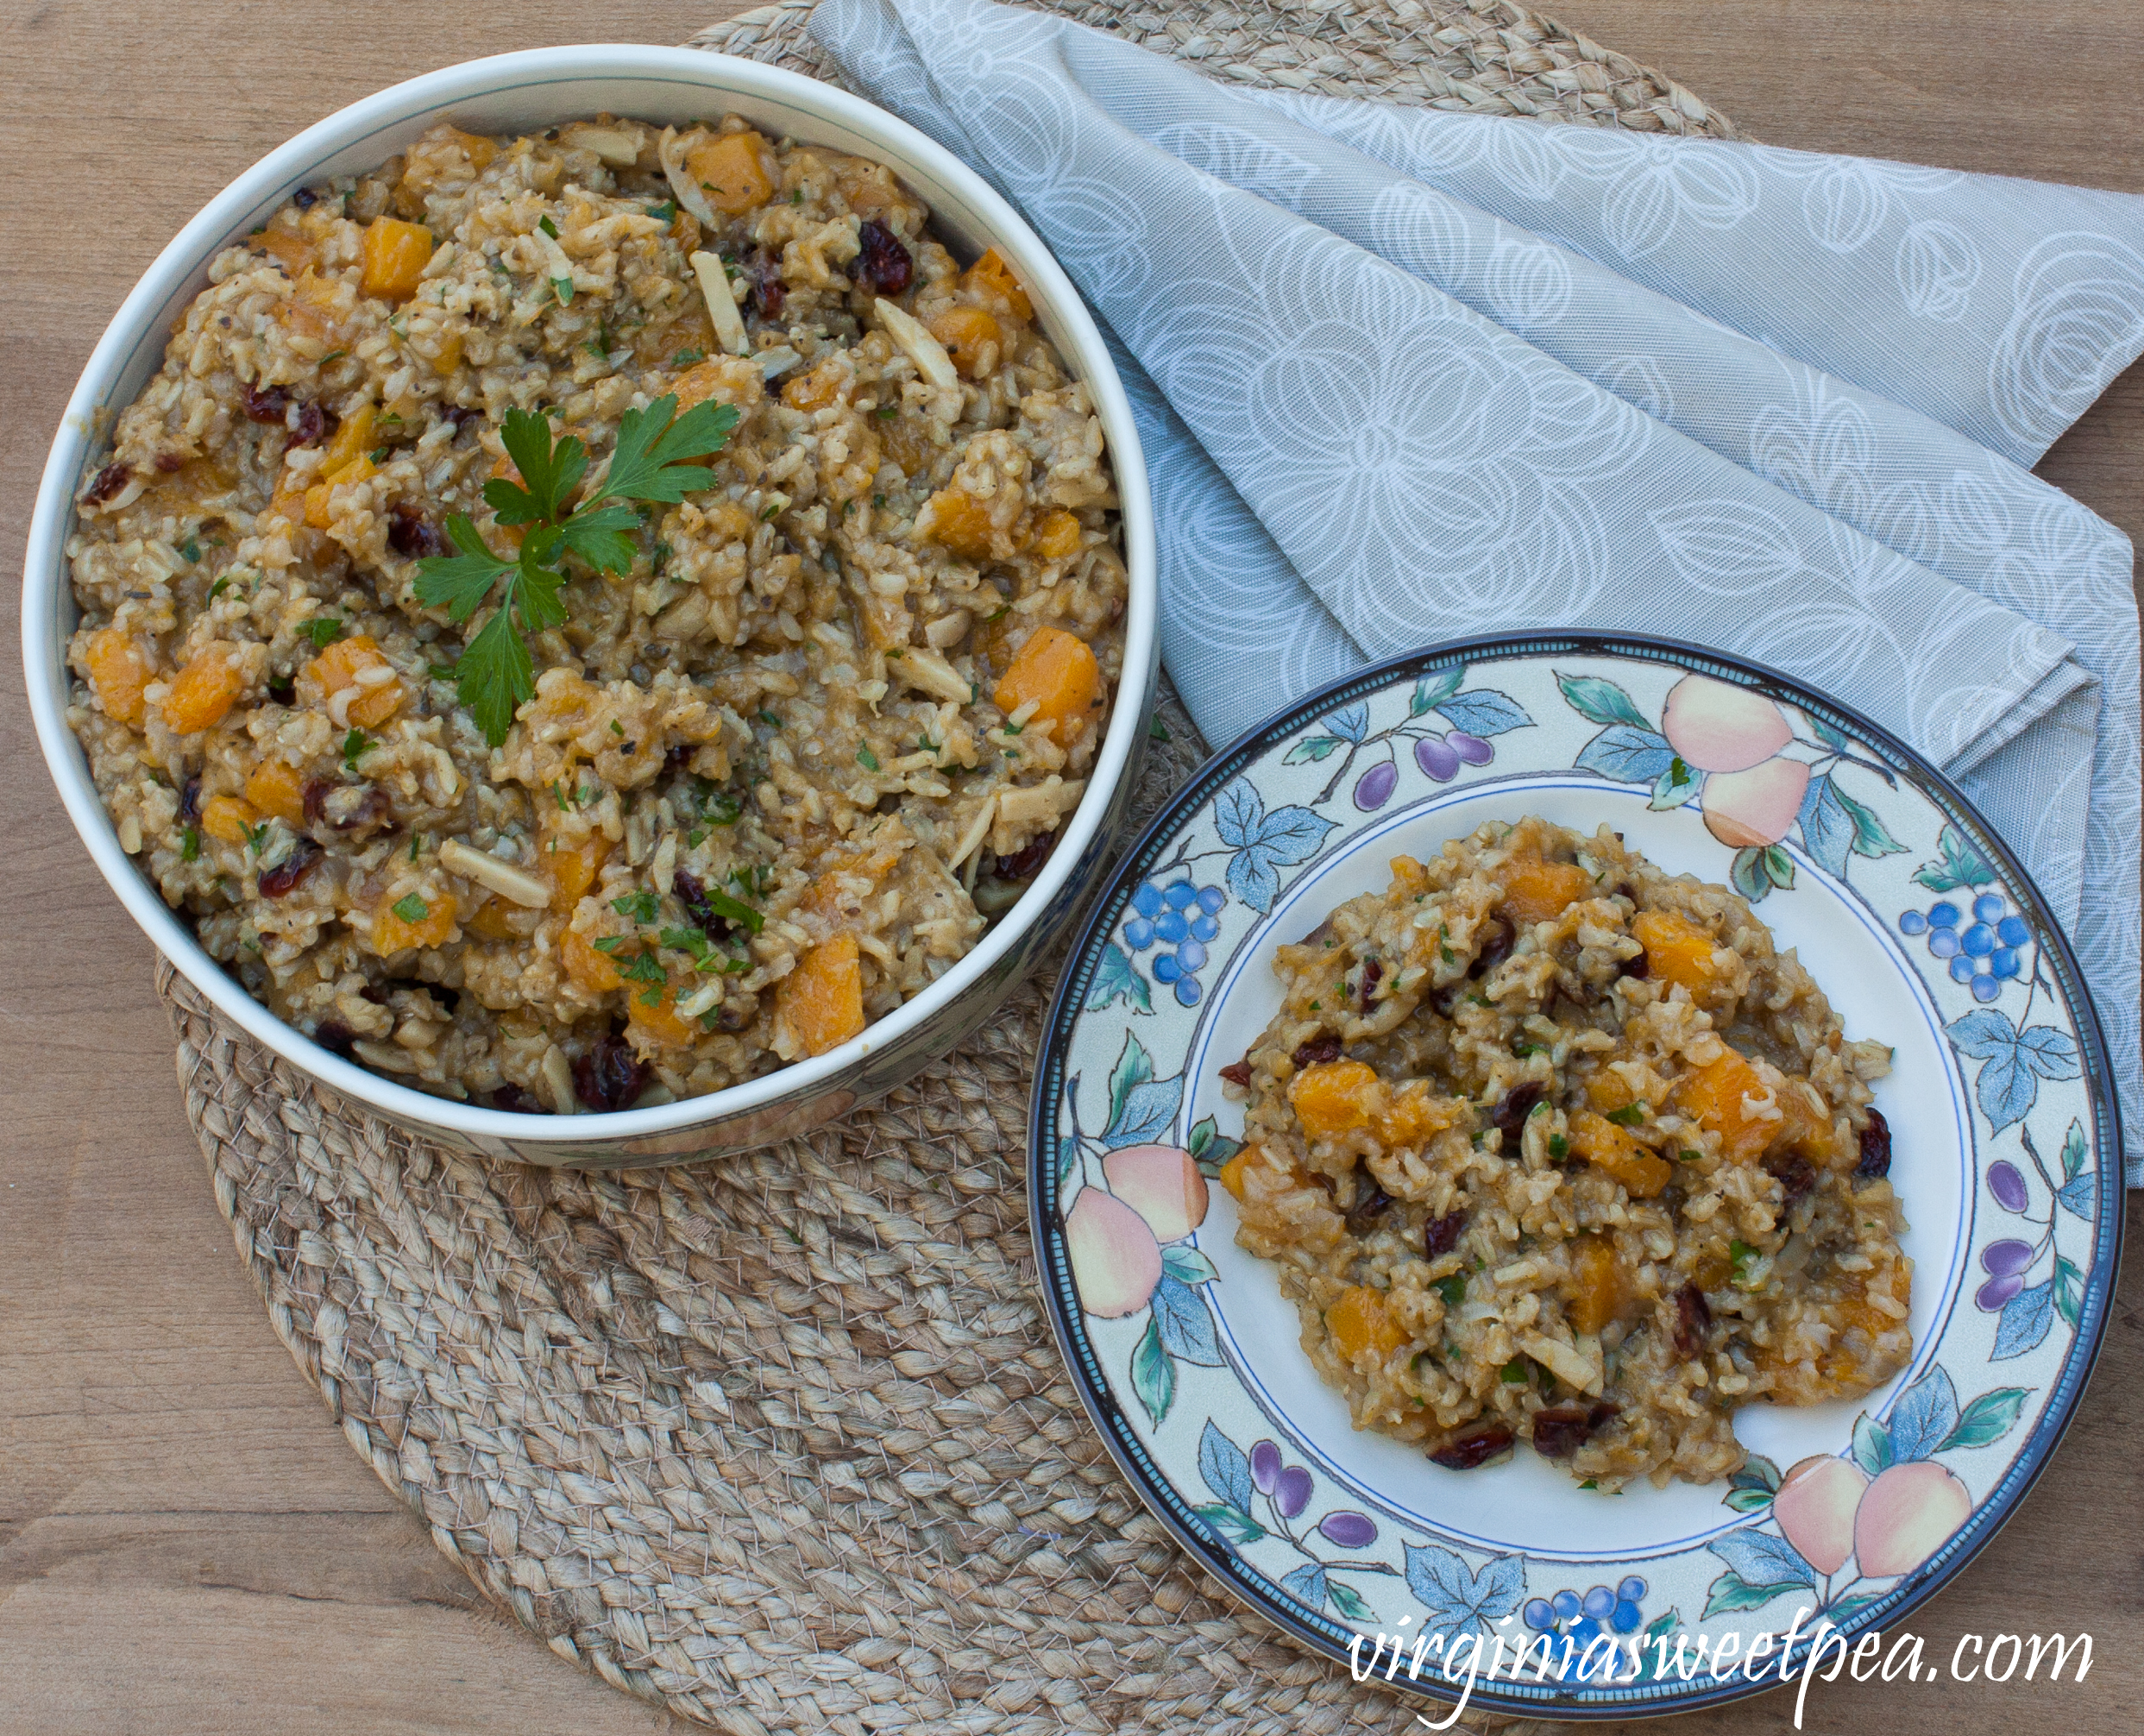 Butternut Squash Rice Pilaf - Butternut squash, almonds and dried cranberries mixed with brown rice cooked with garlic, onion, and spices makes a flavorful combination. #sidedish #butternutsquash #rice #ricepilaf